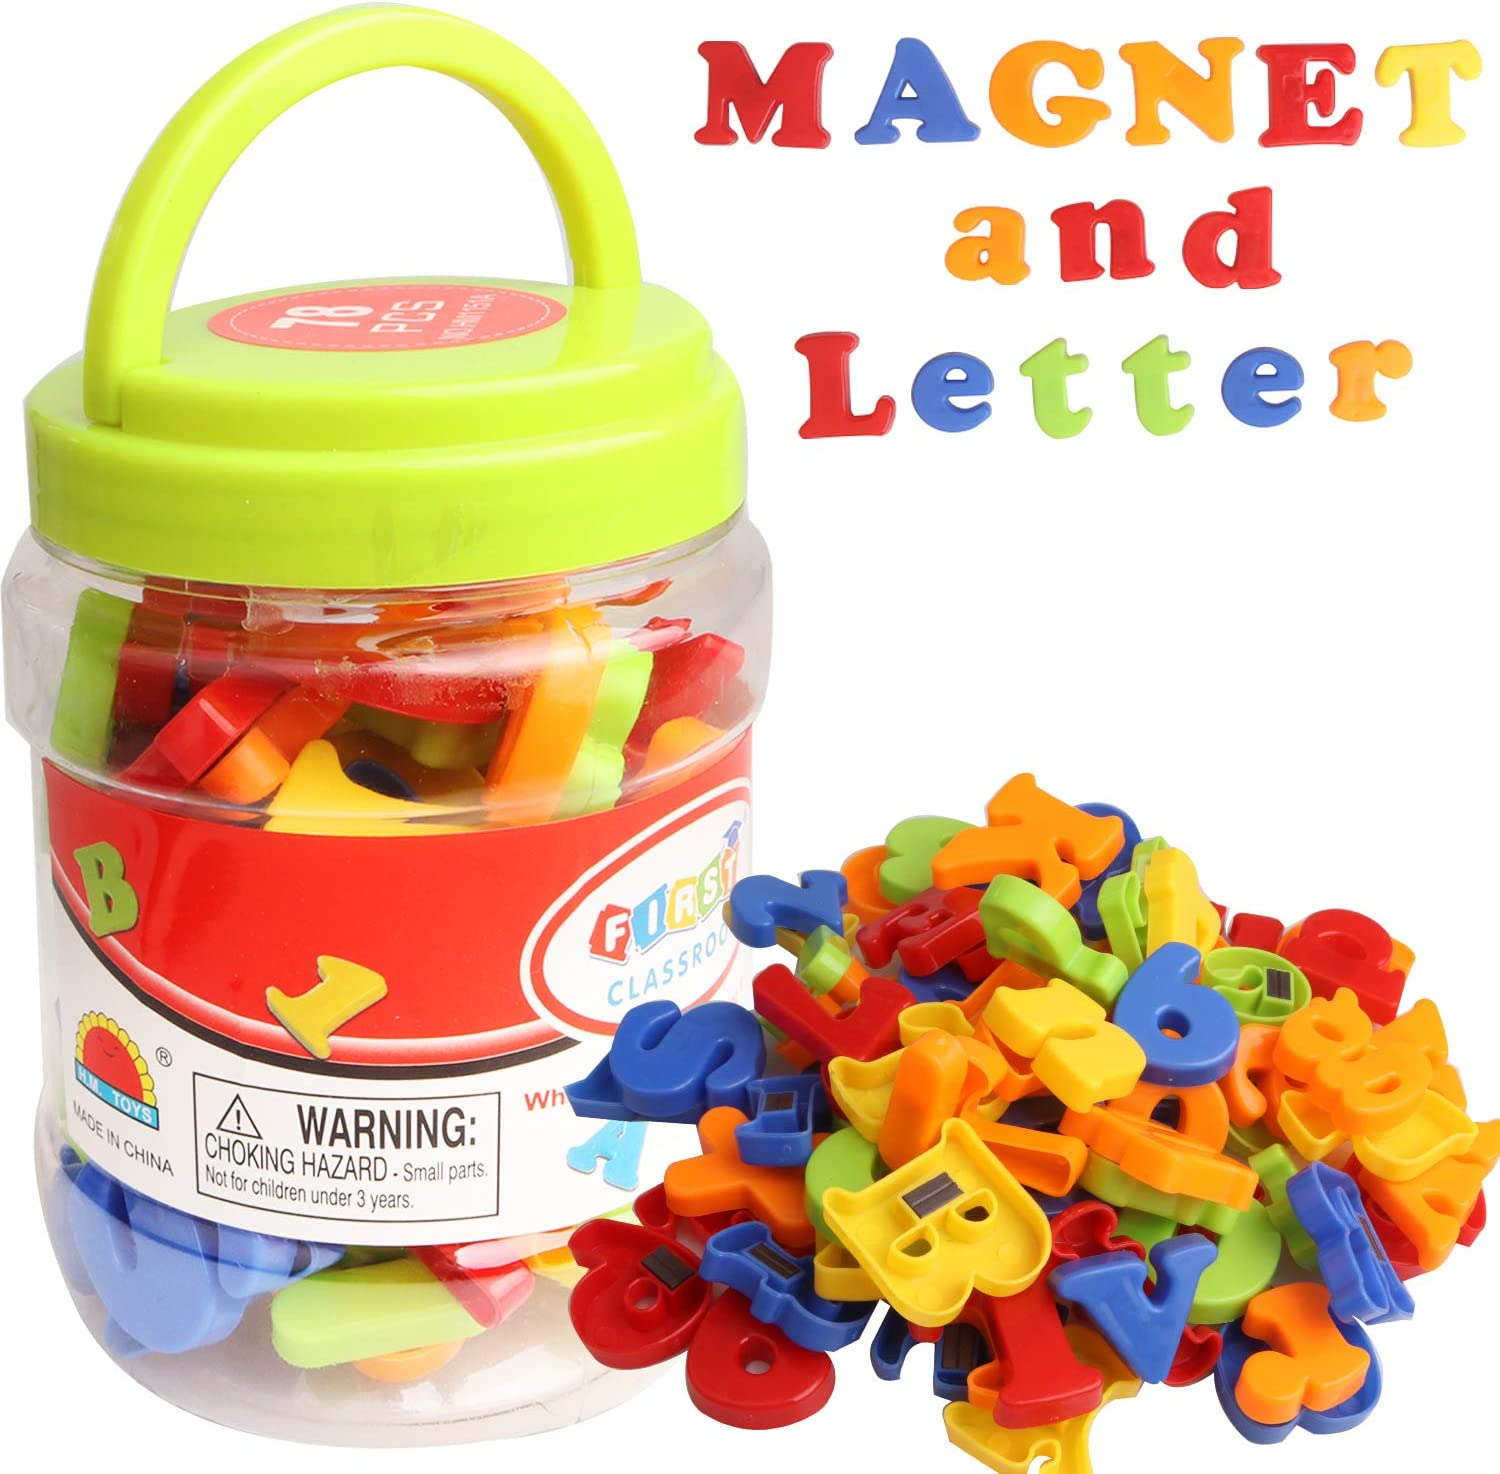 78 Pcs Colorful Plastic Fridge Magnets ABC Alphabet 123 Educational Toy Set Preschool Learning Spelling Counting Uppercase Lowercase Math Symbols for Toddler Kids Magnetic Letters and Numbers Toys